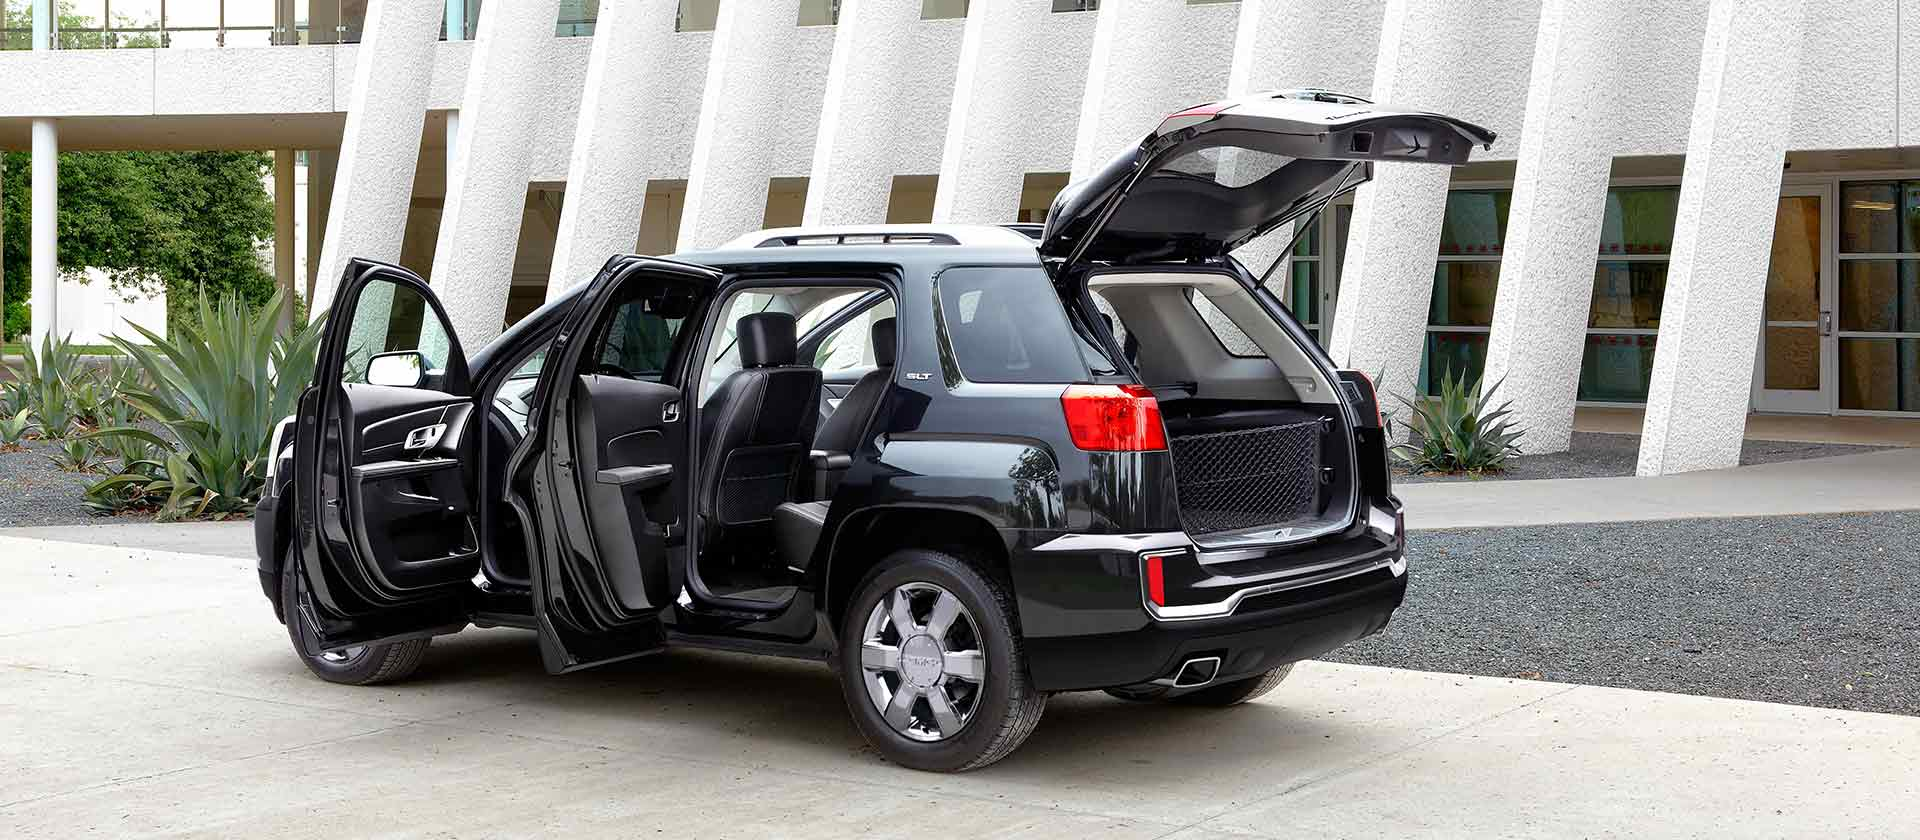 2016 GMC Terrain doors open